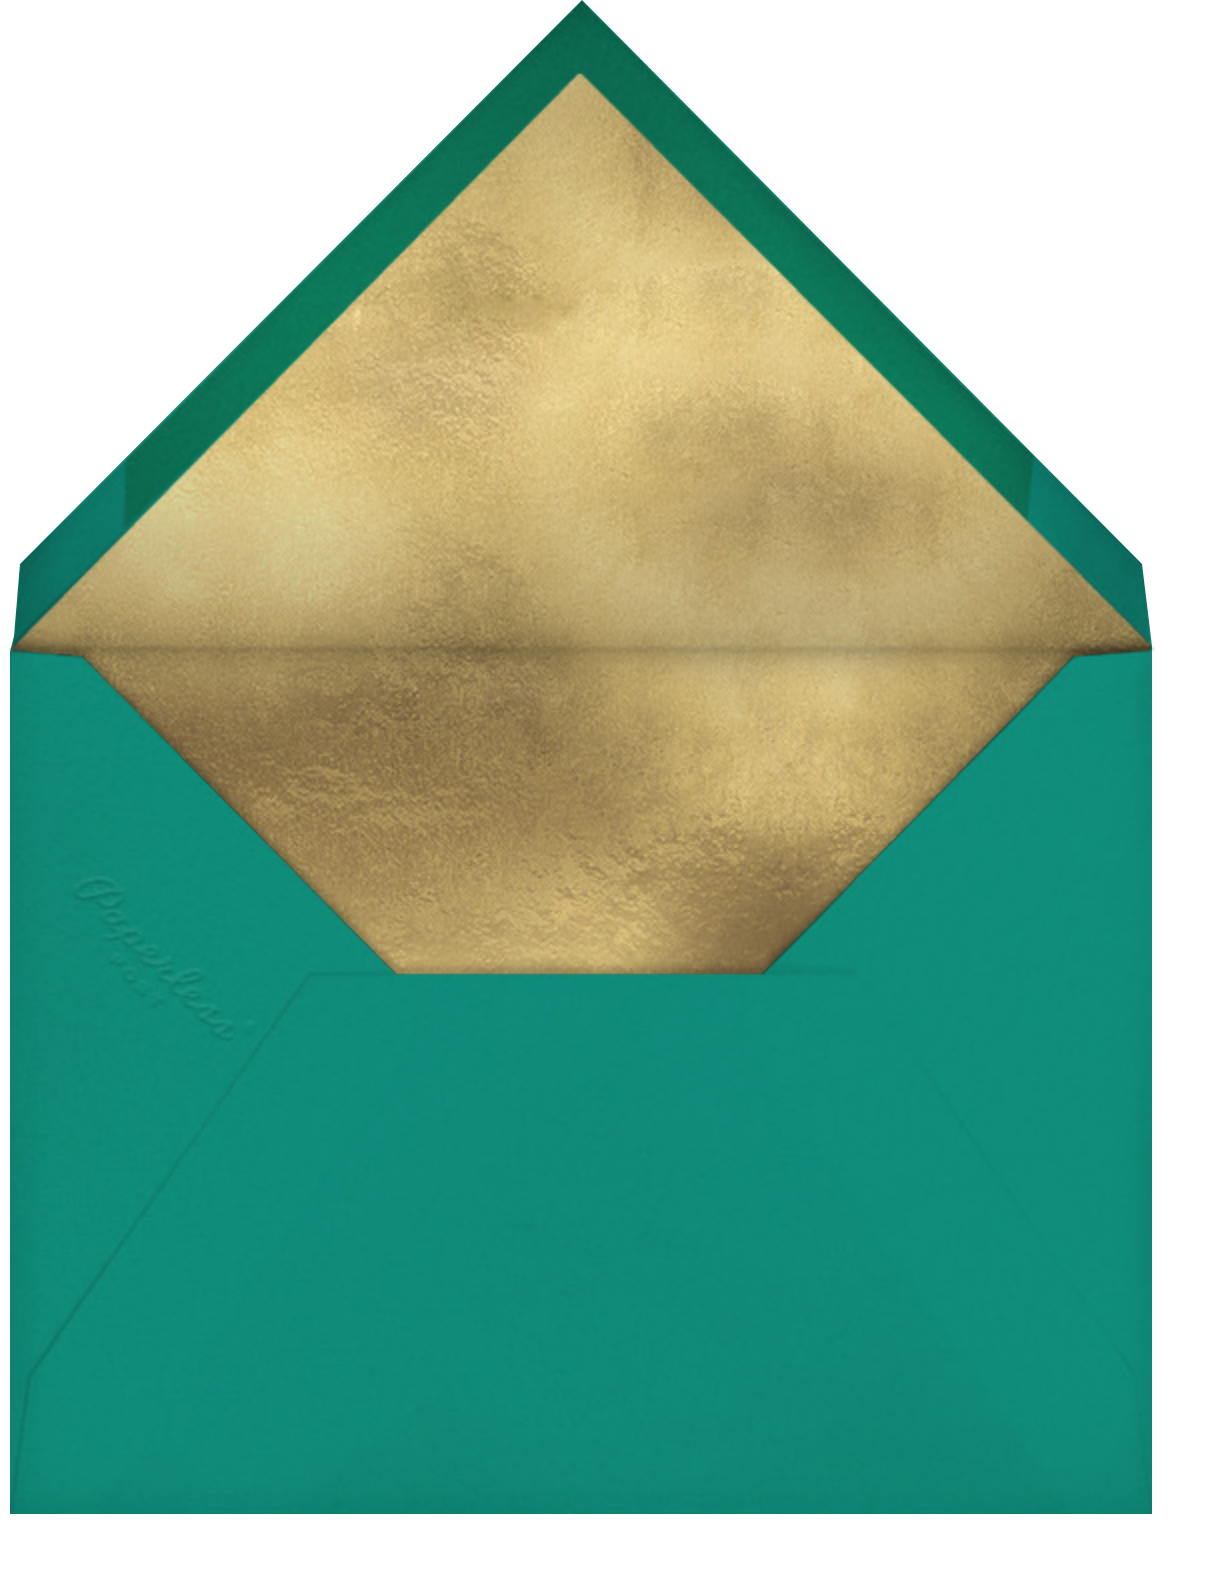 Dvaar (Invitation) - Teal - Paperless Post - All - envelope back